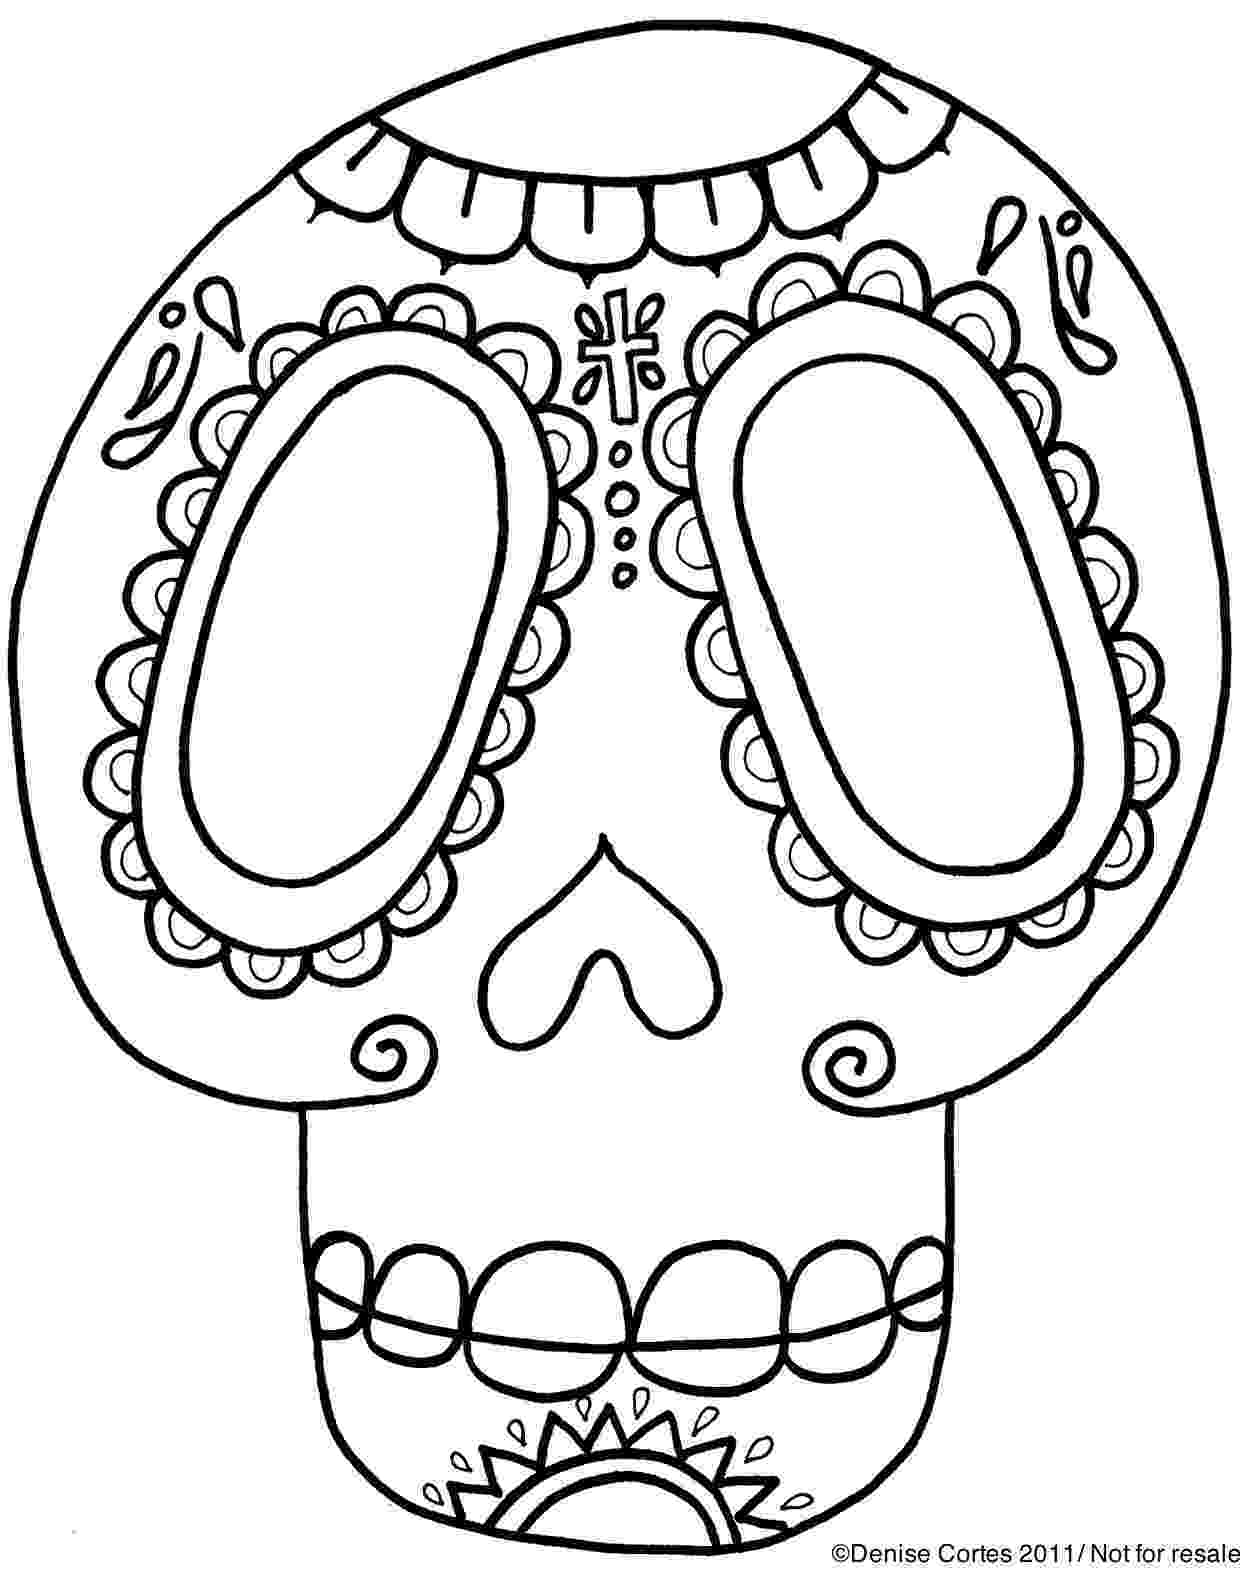 day of the dead template modern art 4 kids of day the template dead